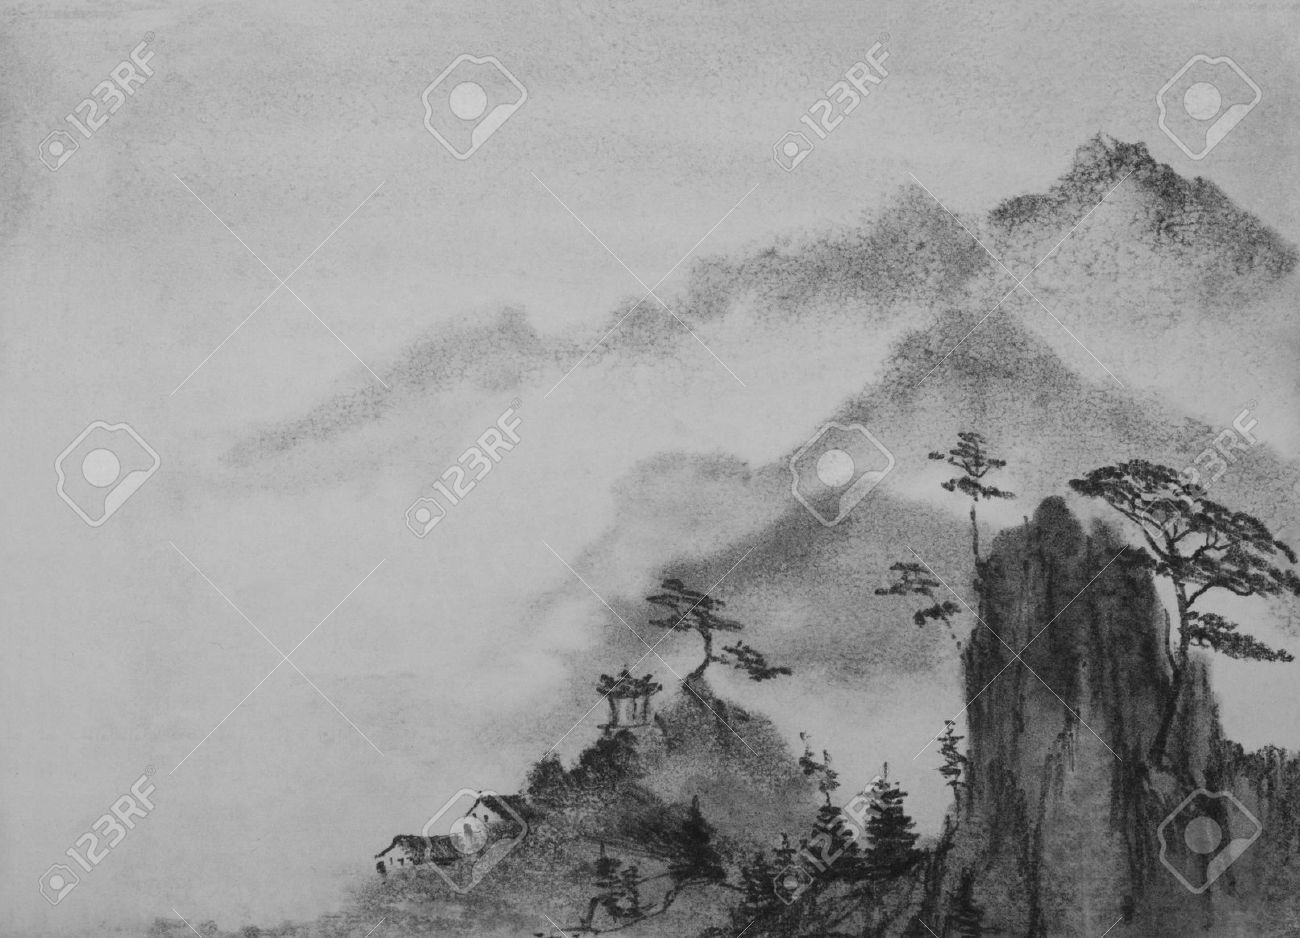 f6aa6f559 Chinese Painting Mountain Pines And Clouds Stock Photo, Picture And ...